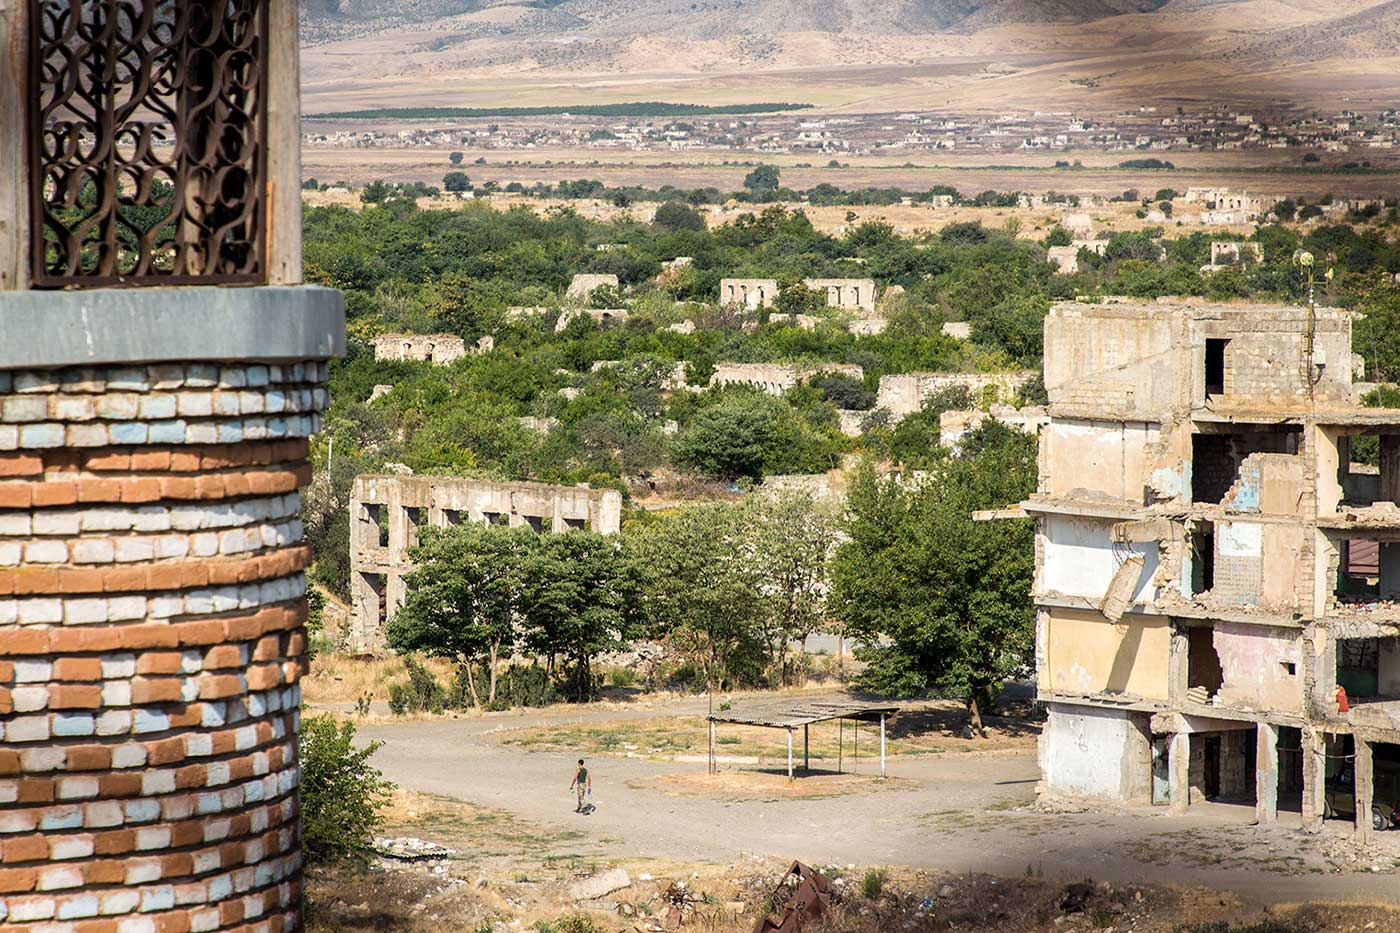 A lone figure strolls the empty streets of Agdam. Nagorno-Karabakh.